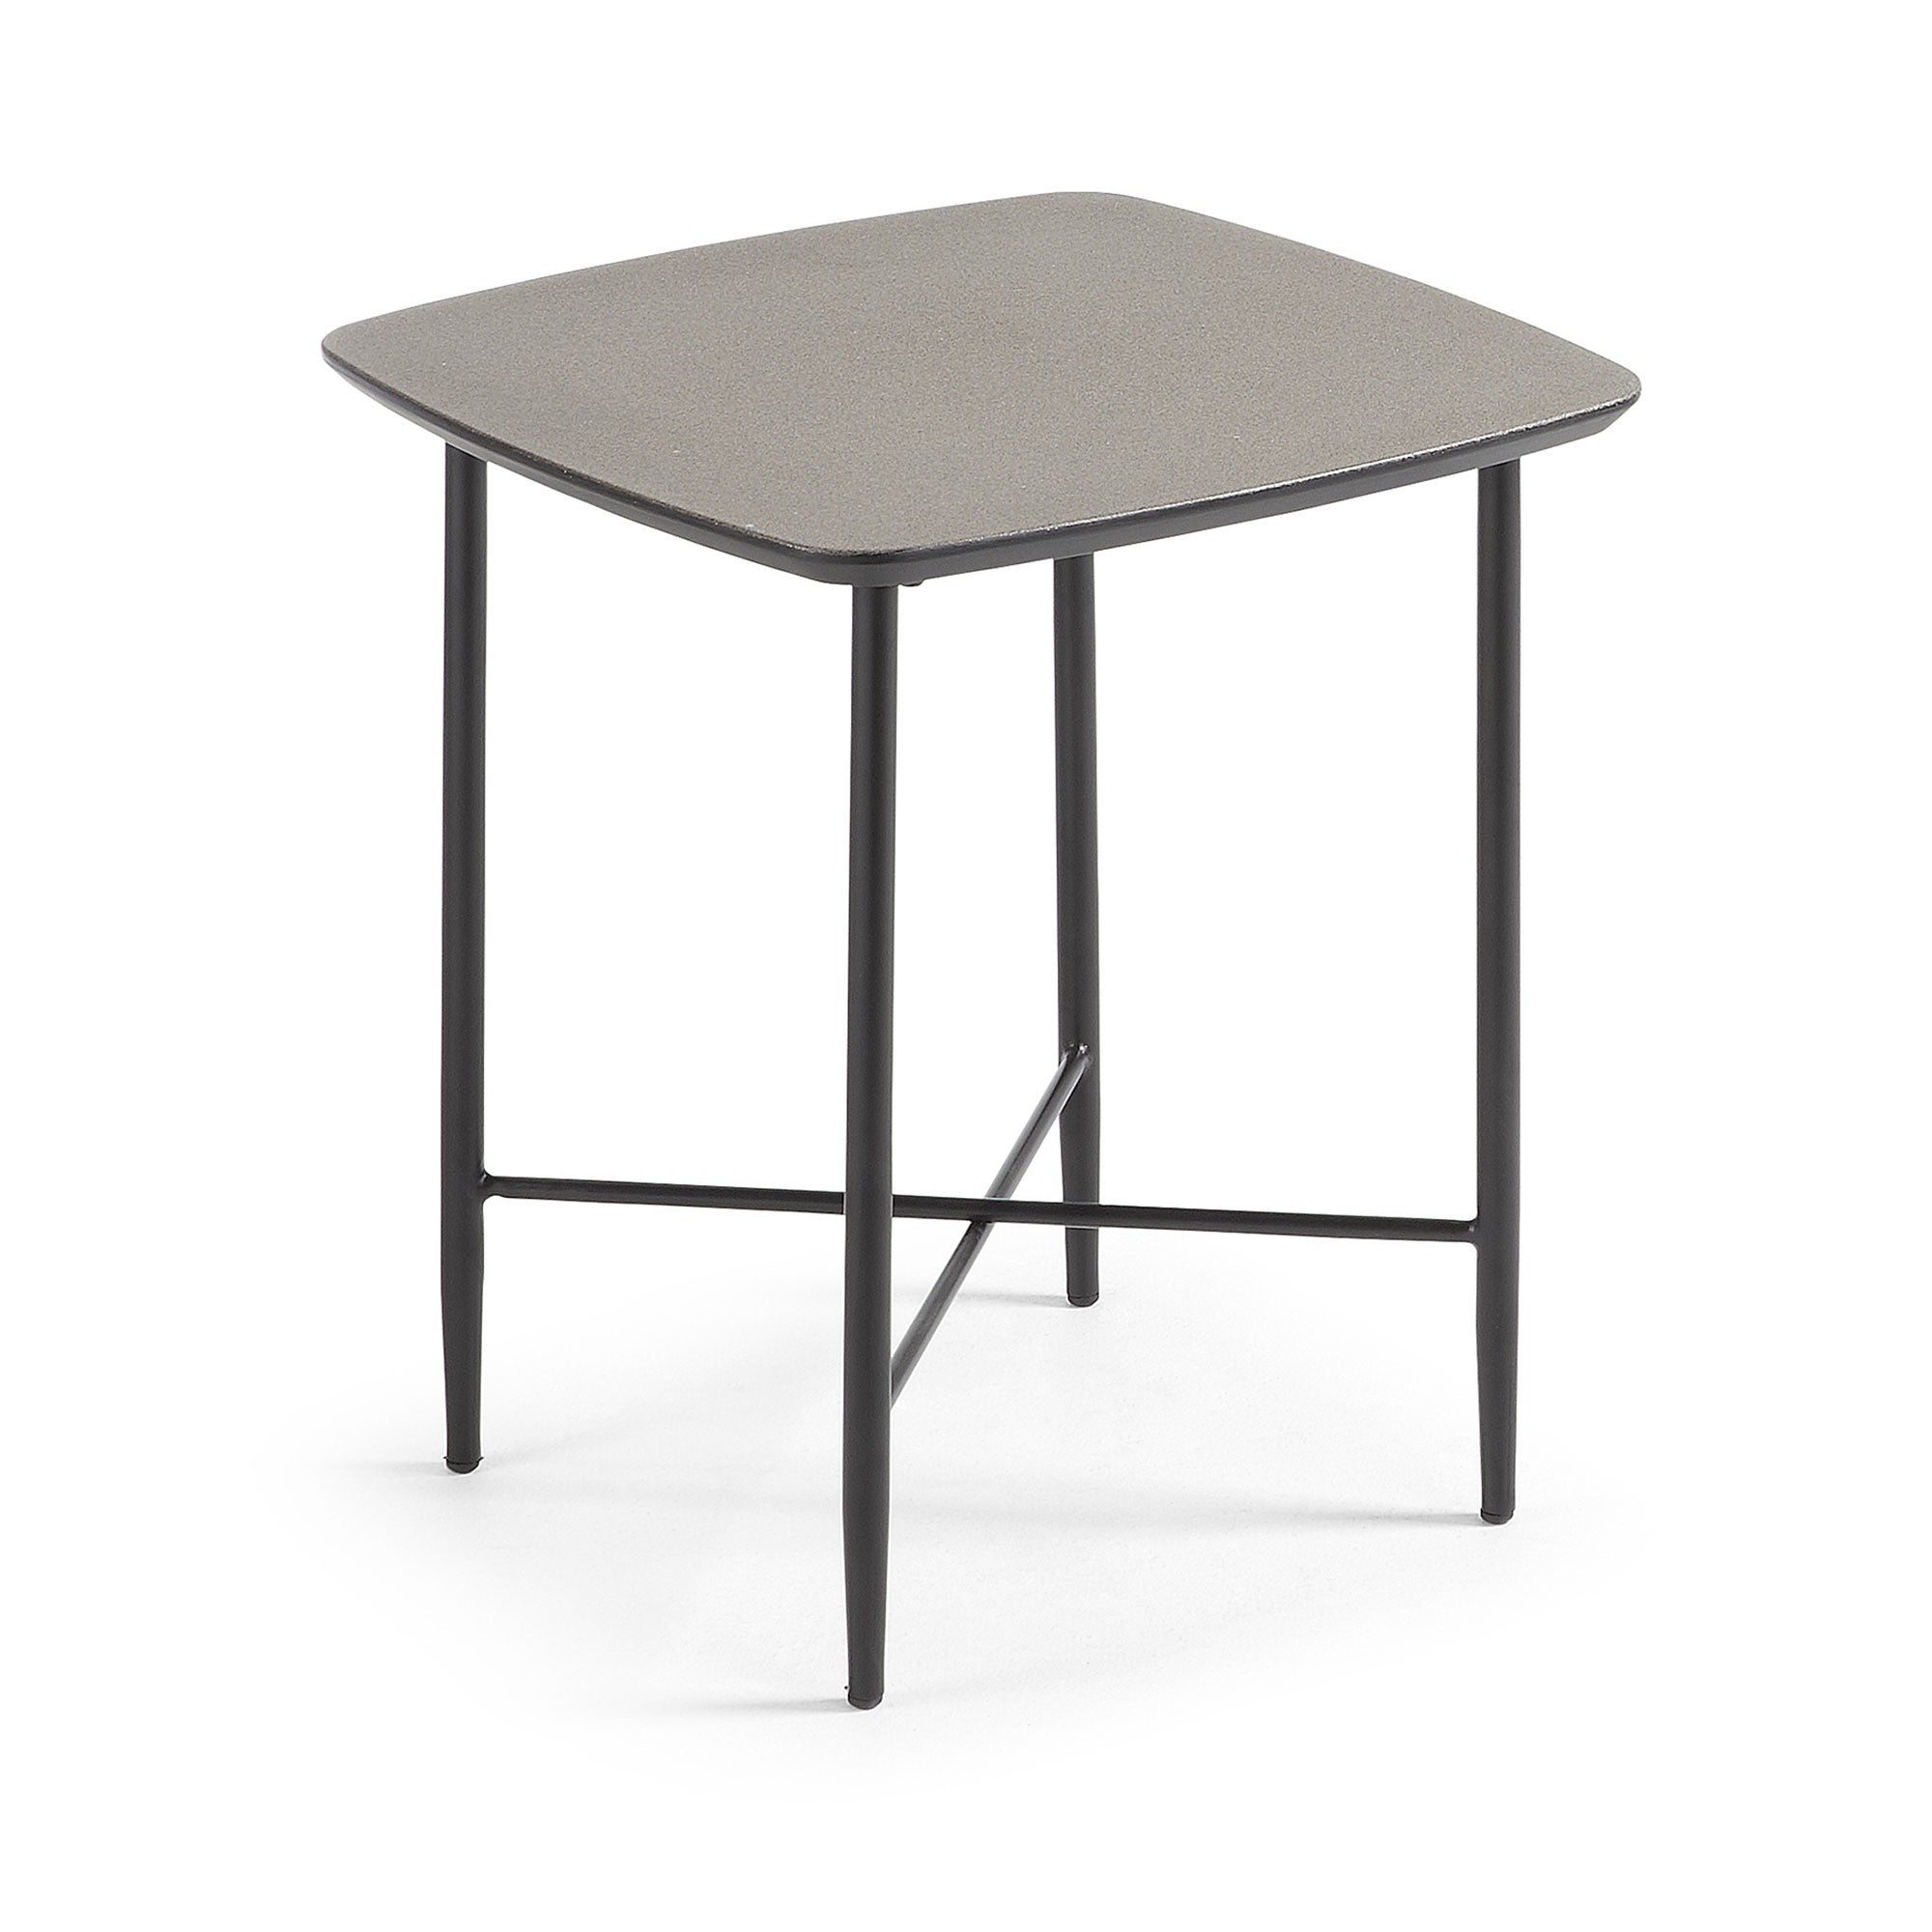 Tyan Side table 45X45 metal mdf brown - CC0521M09, Side Table - Home-Buy Interiors